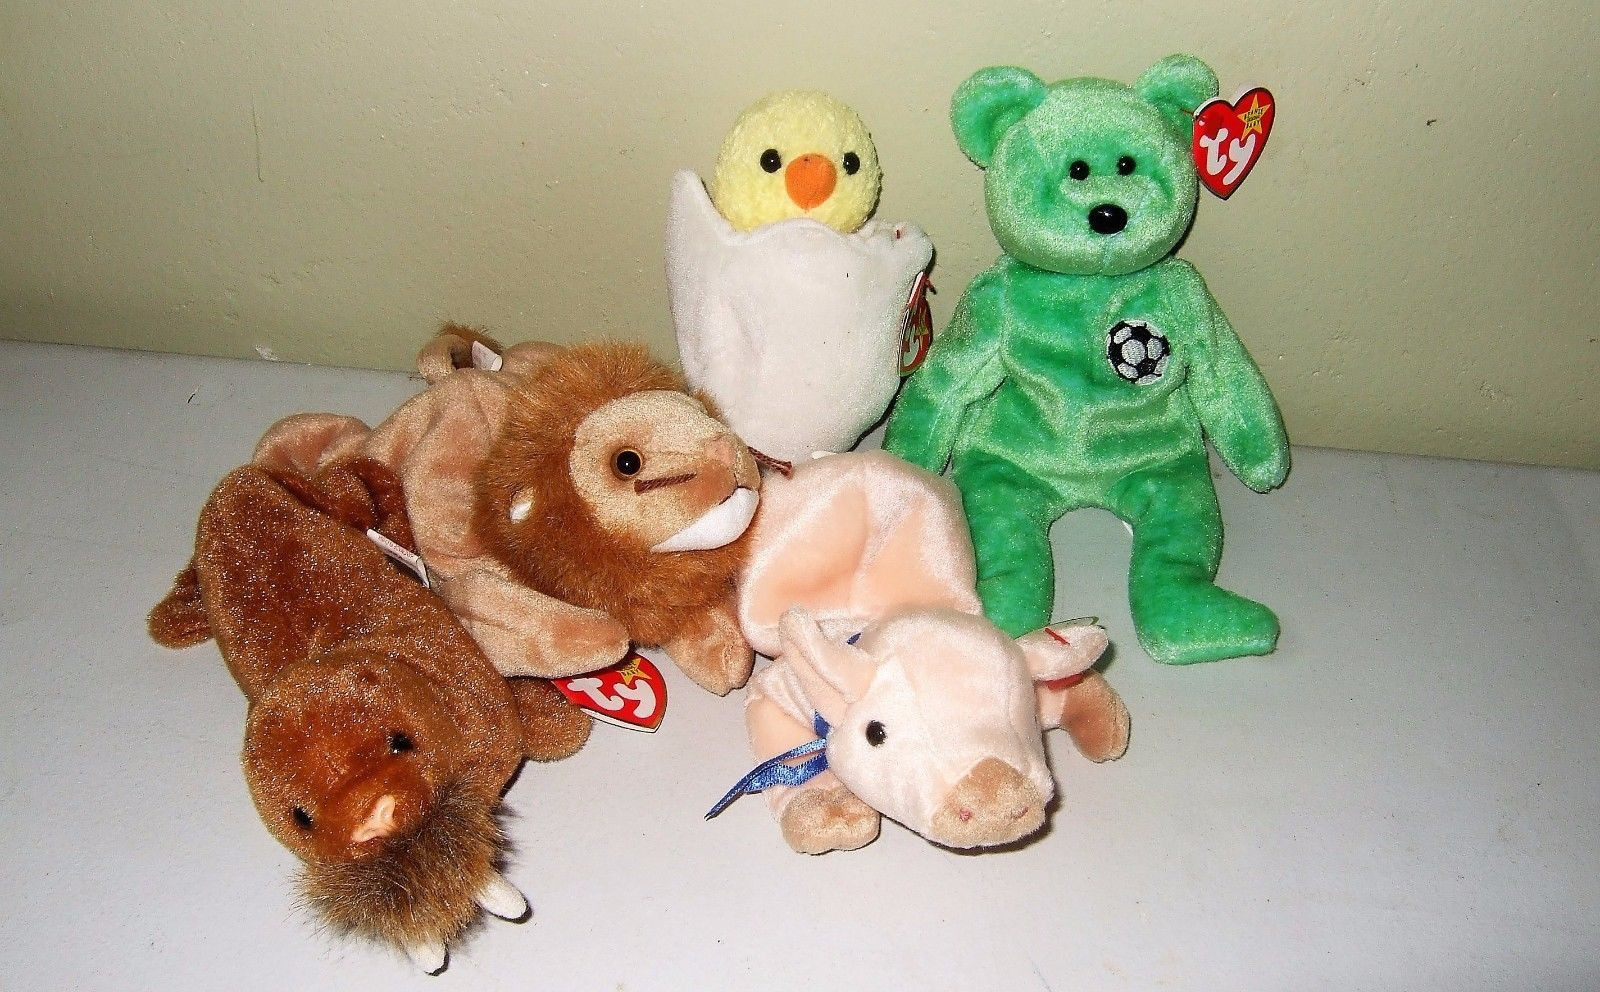 c3851411282 Ty Beanie Babies Eggbert Chick Errors Kicks and 50 similar items. S l1600